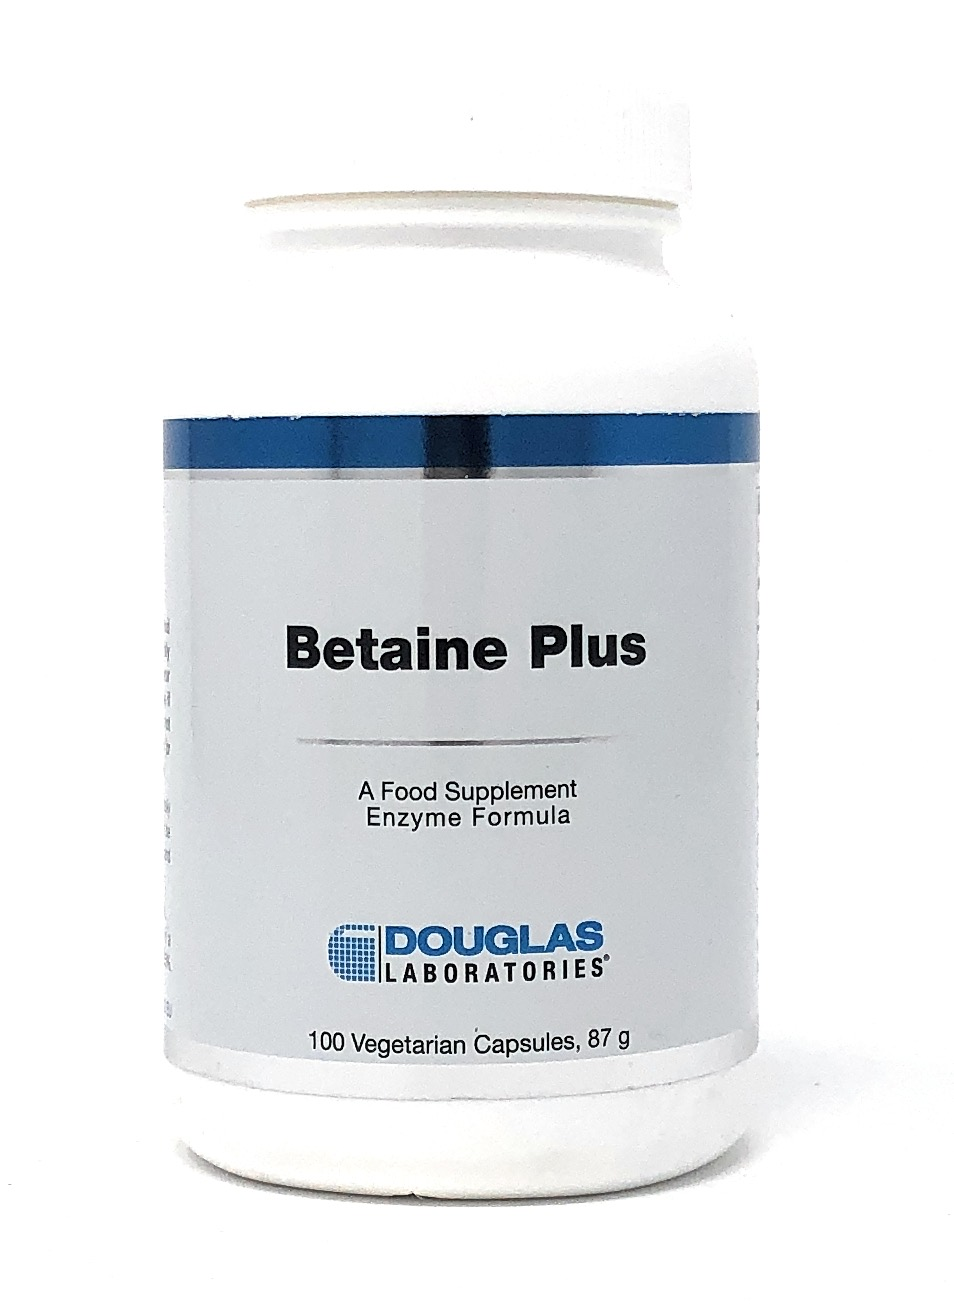 Douglas Laboratories Europe Betaine Plus (650 Betain HCL+140mg Pepsin) 100 Kapseln (87g)